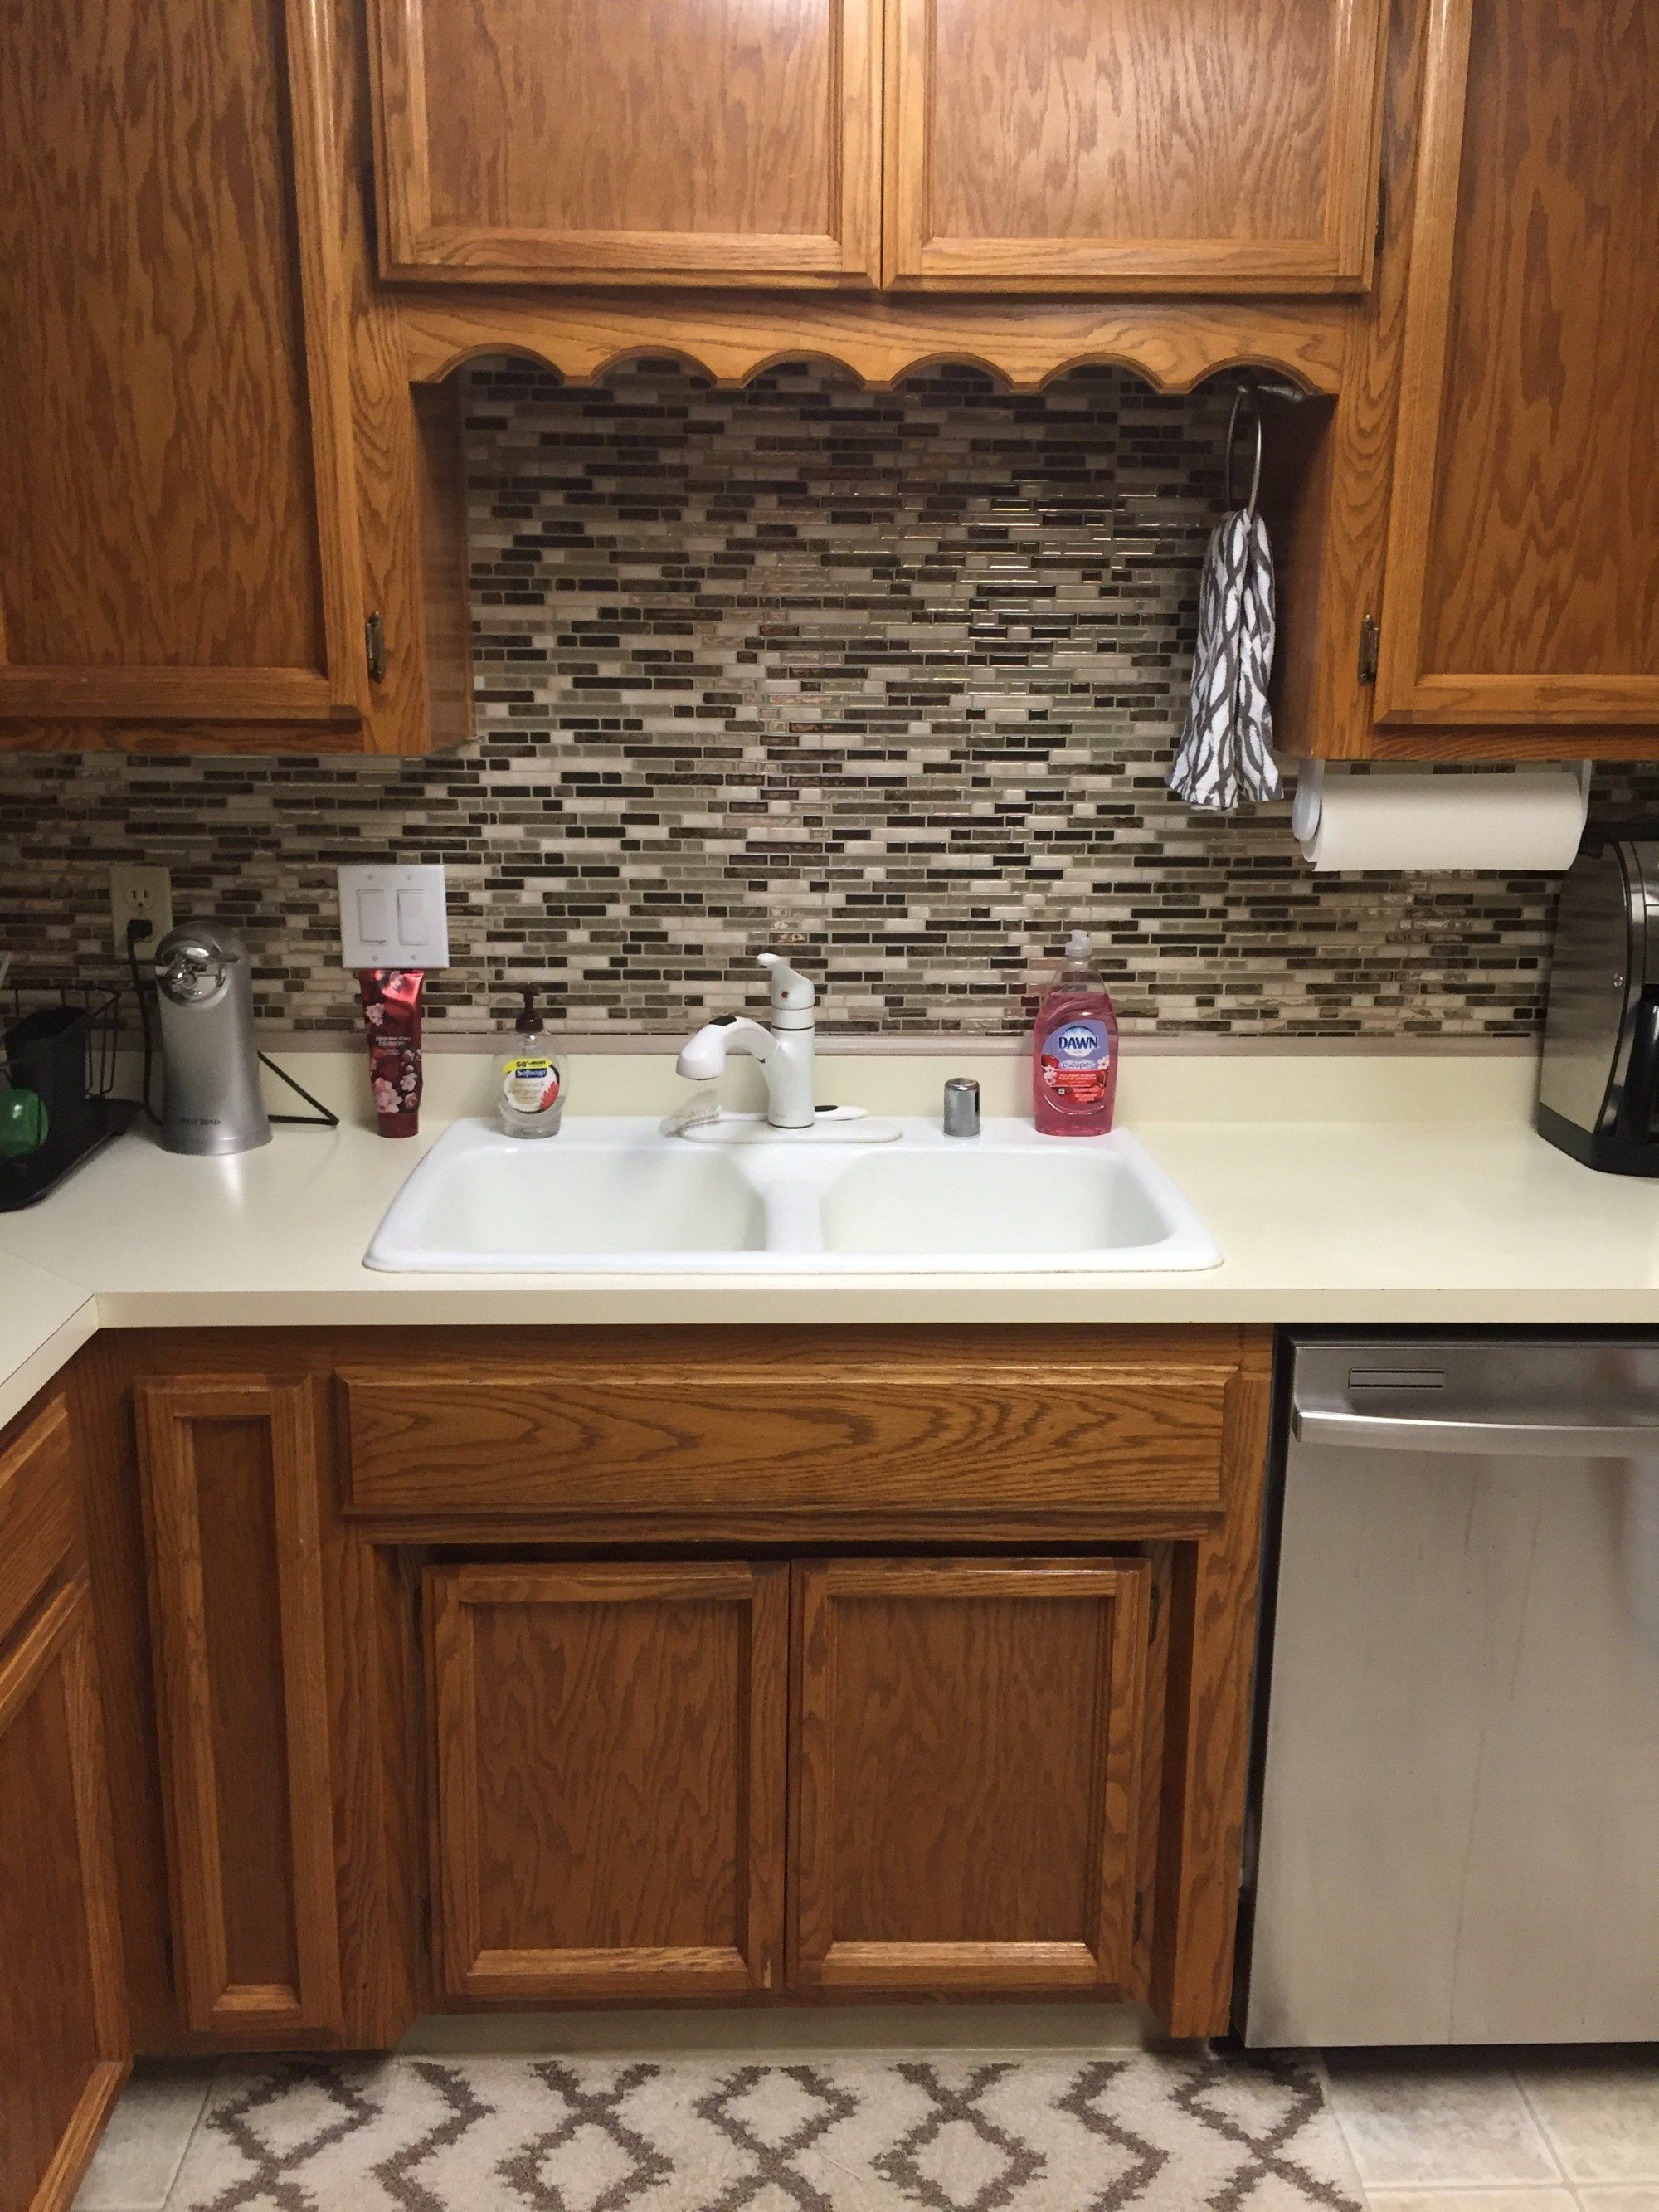 Vinyl Tile Backsplash Quick And Easy Kitchen Upgrade Backsplash